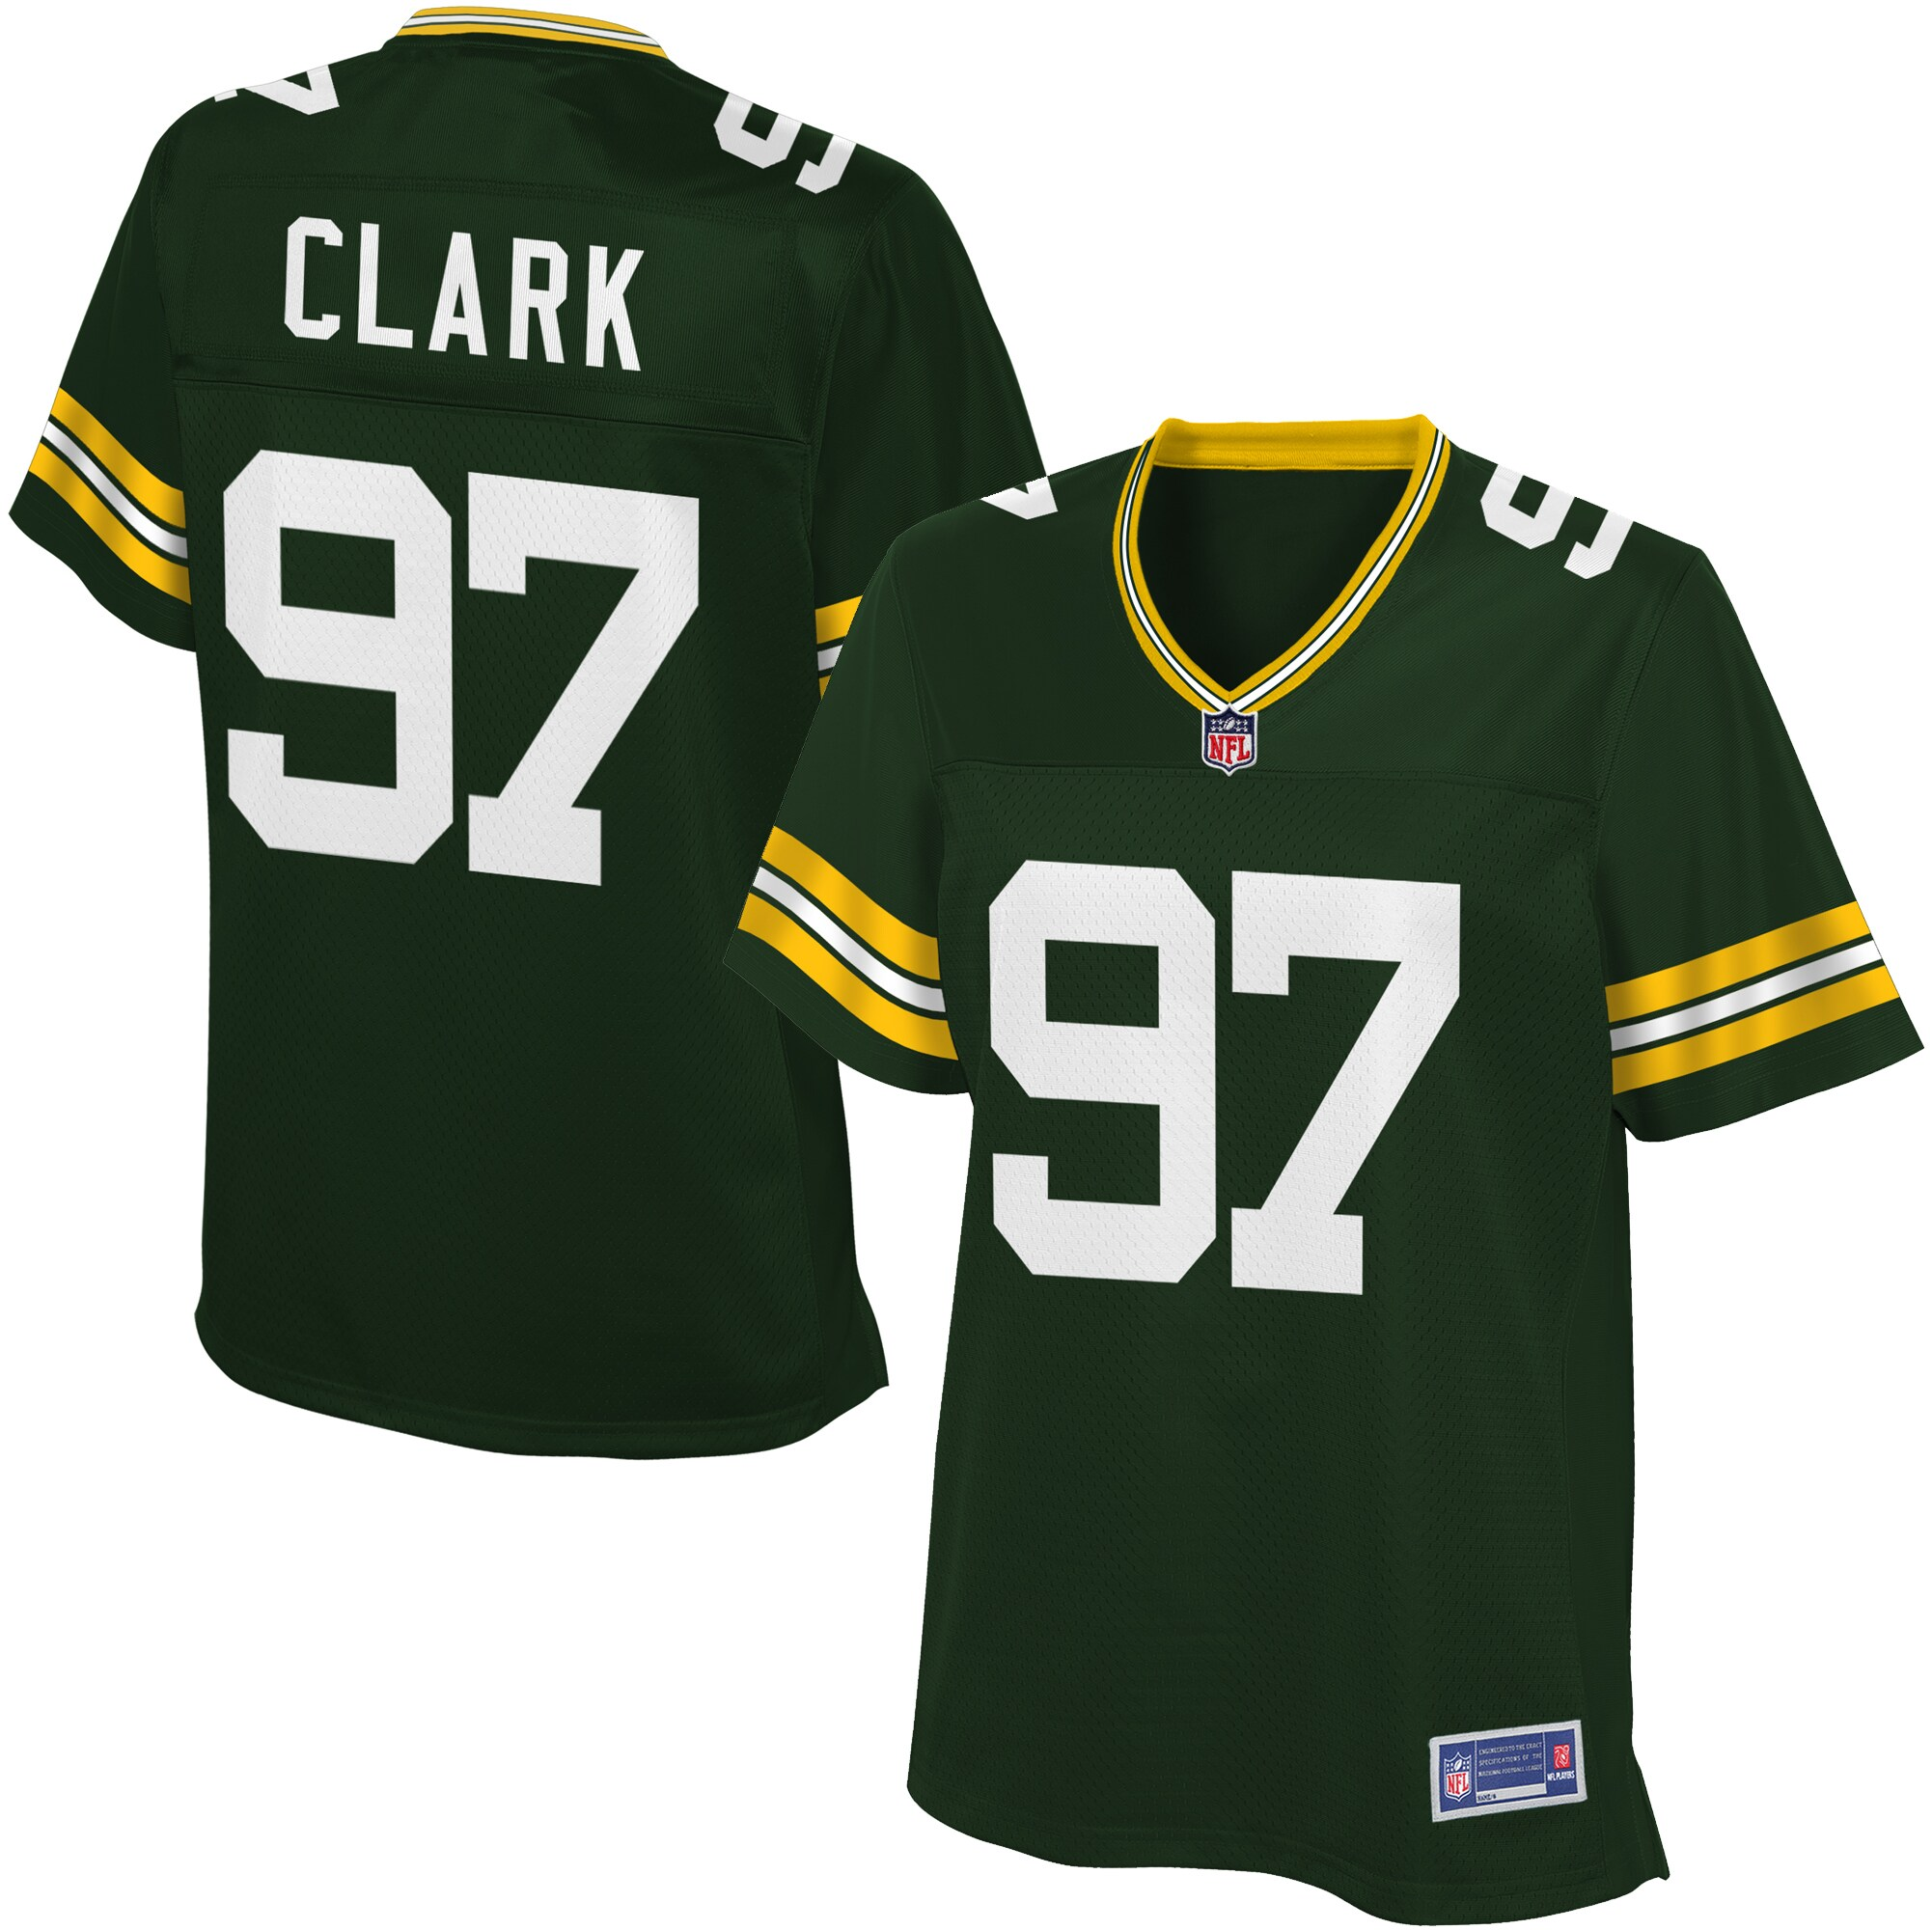 Kenny Clark Green Bay Packers NFL Pro Line Women's Player Jersey - Green